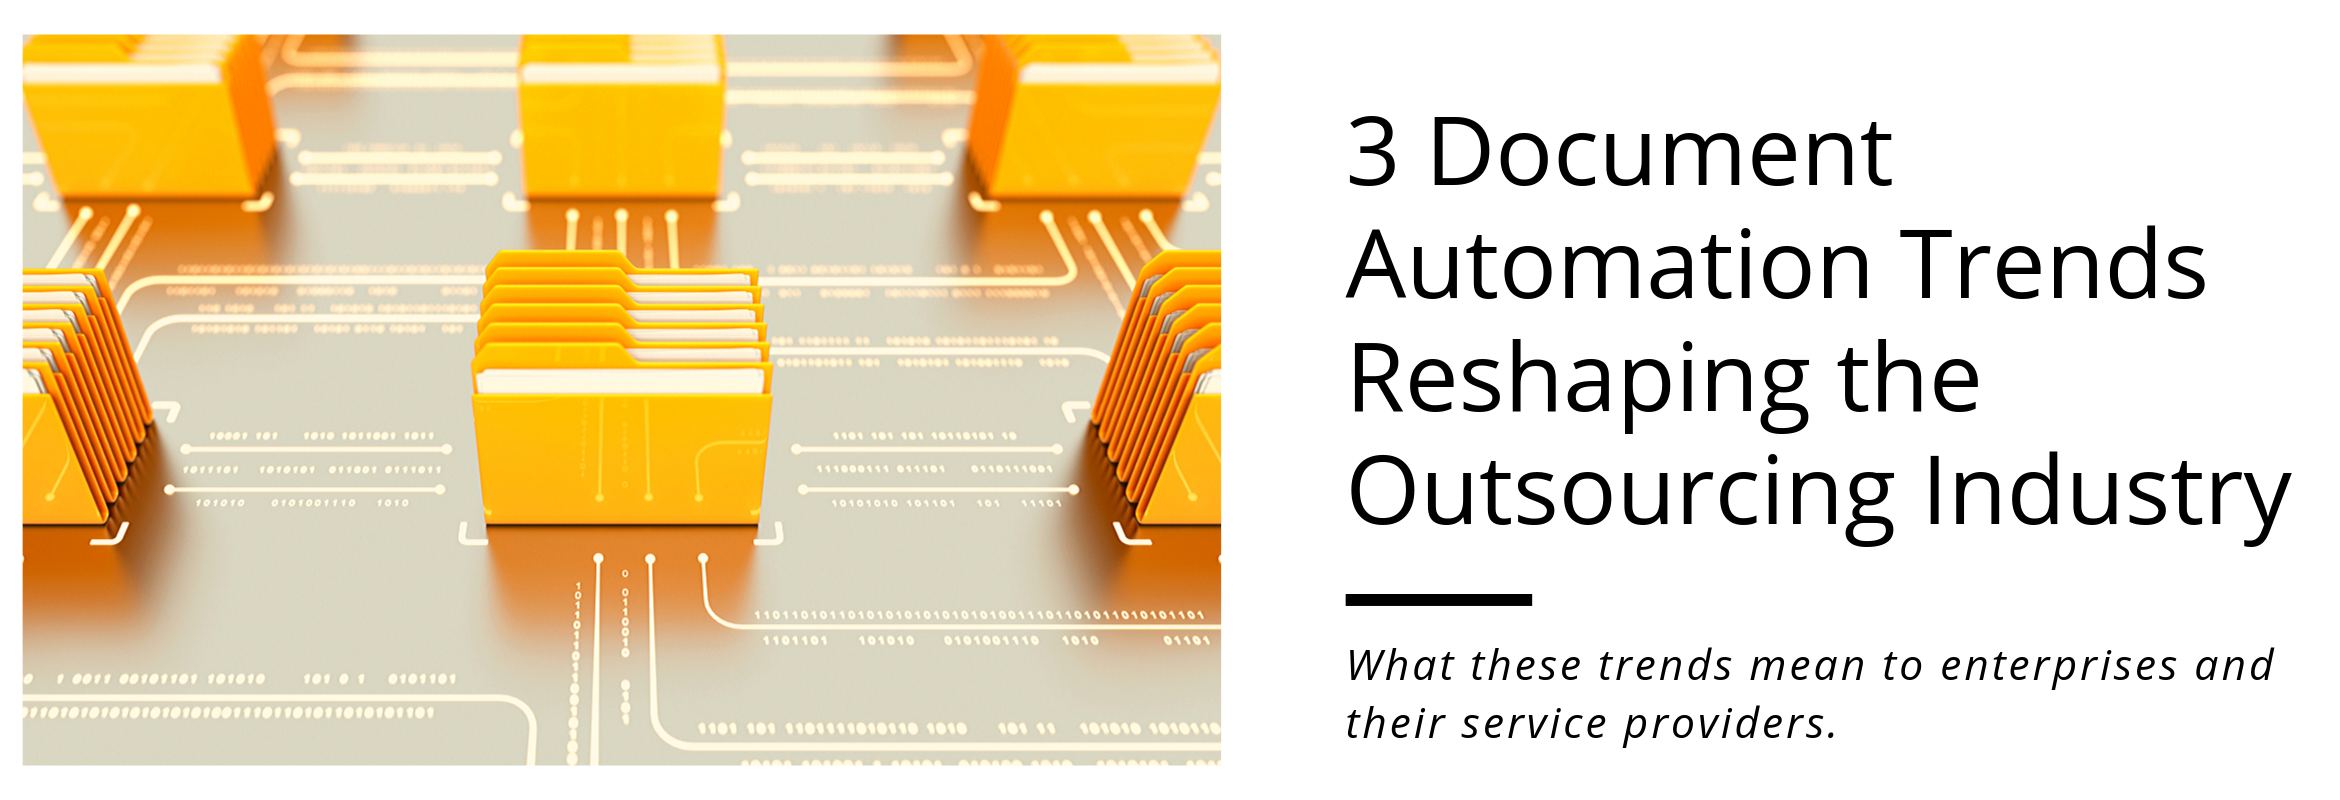 Document automation trends in outsourcing